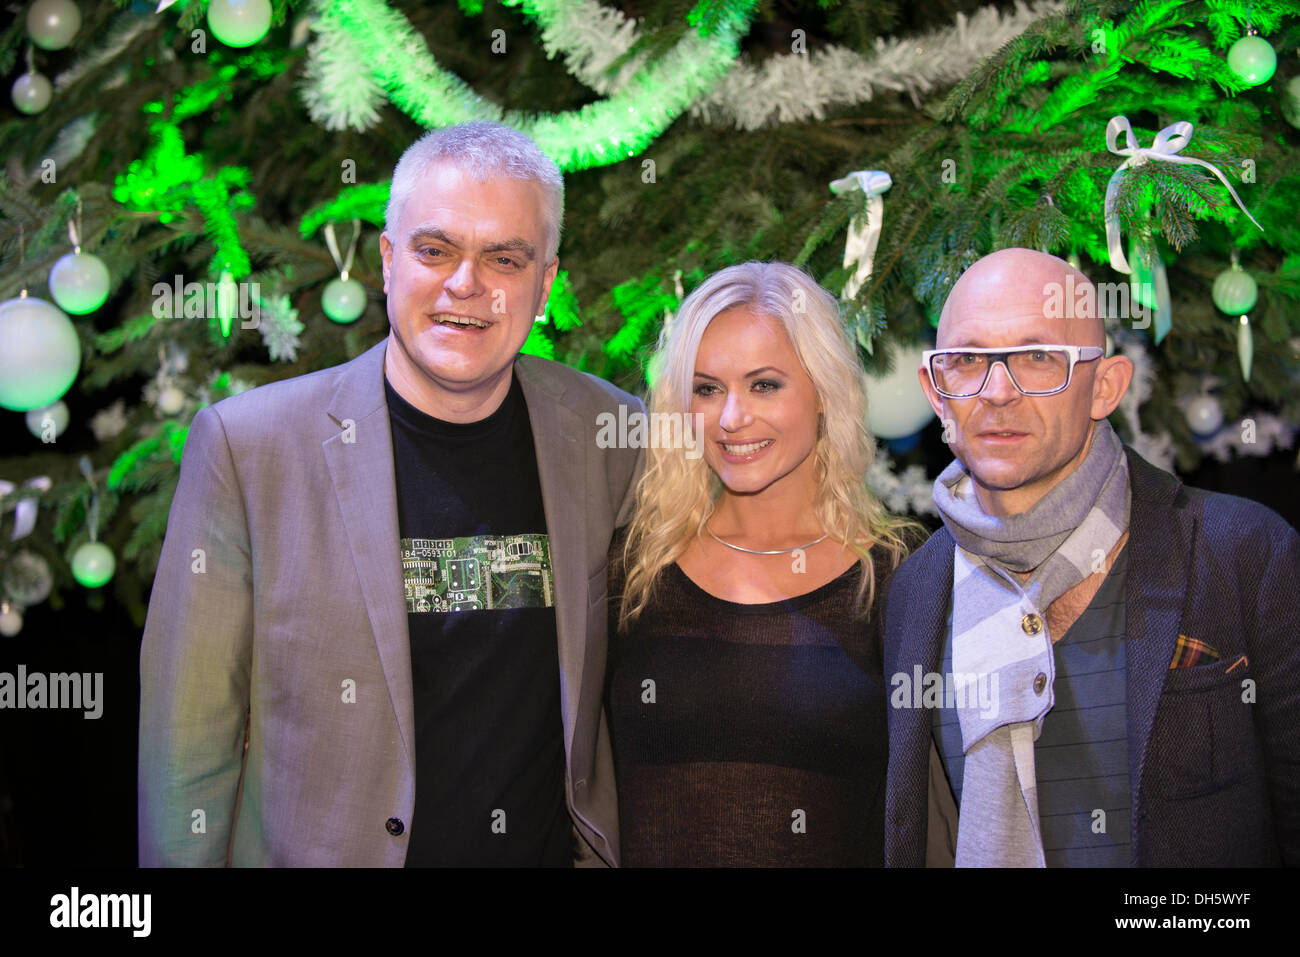 the gadget show live christmas earls court london jon bentley pollyanna woodward and jason bradbury of channel 5 gadget show at the opening of the - Christmas Pollyanna